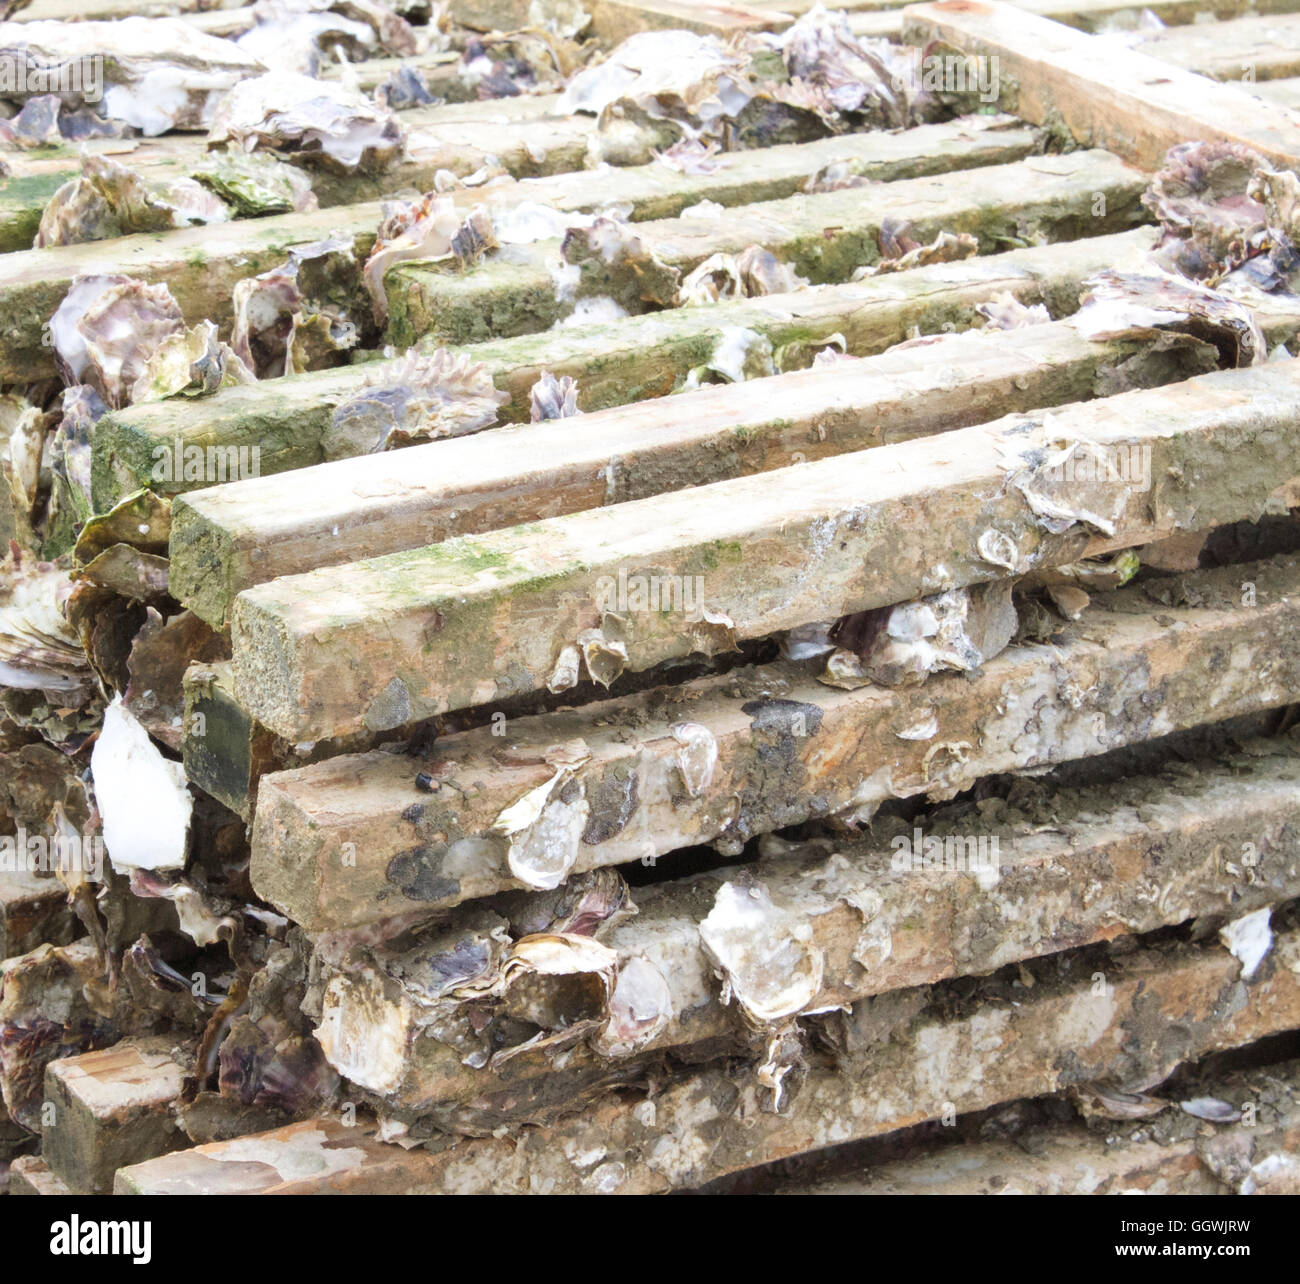 Oyster Stakes For Spat Collection Stacked For Storage